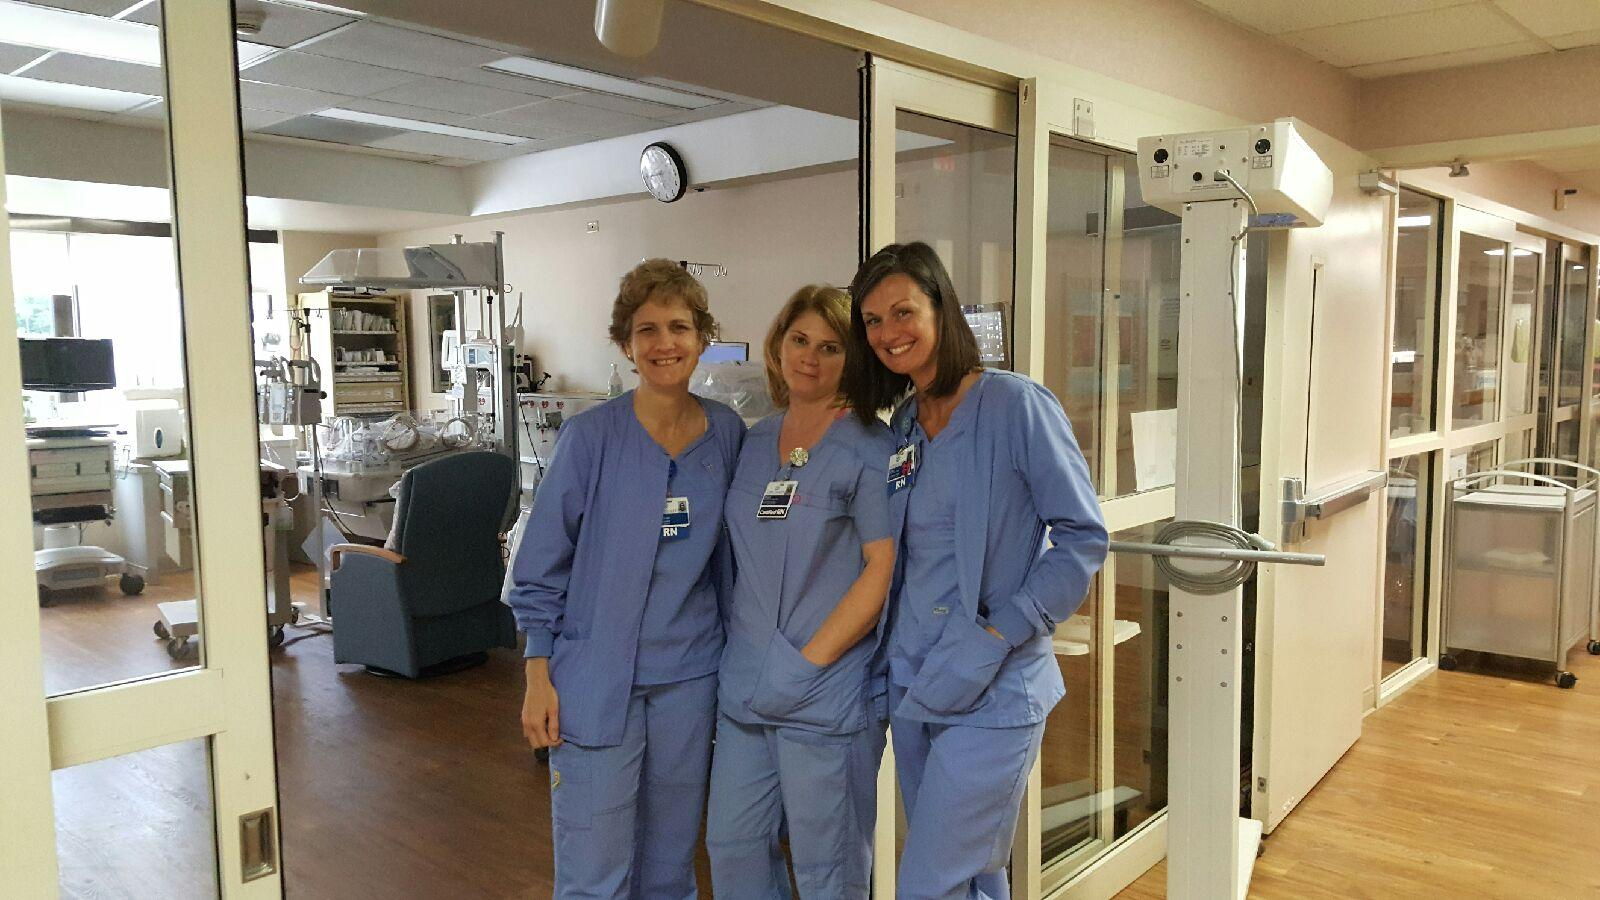 Cone Health NICU staff